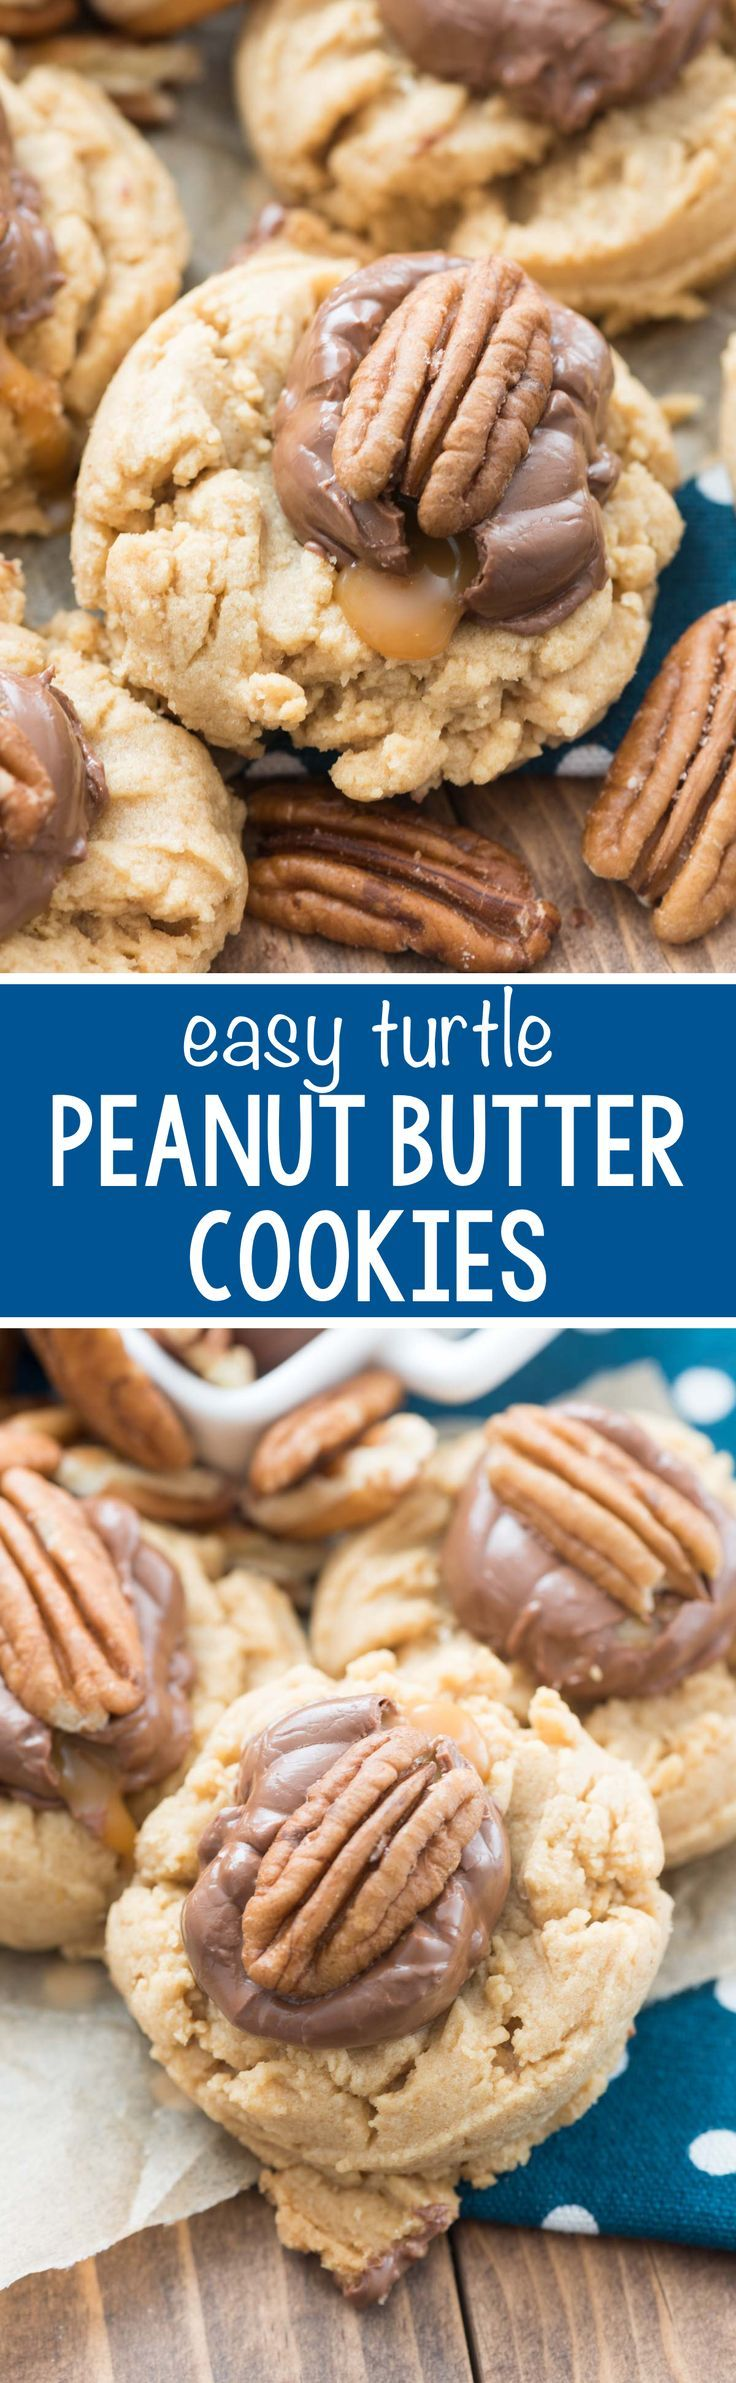 EASY Turtle Peanut Butter Cookies - this is my FAVORITE peanut butter cookie recipe topped with a caramel candy and a pecan. The easiest way to dress up a peanut butter cookie!